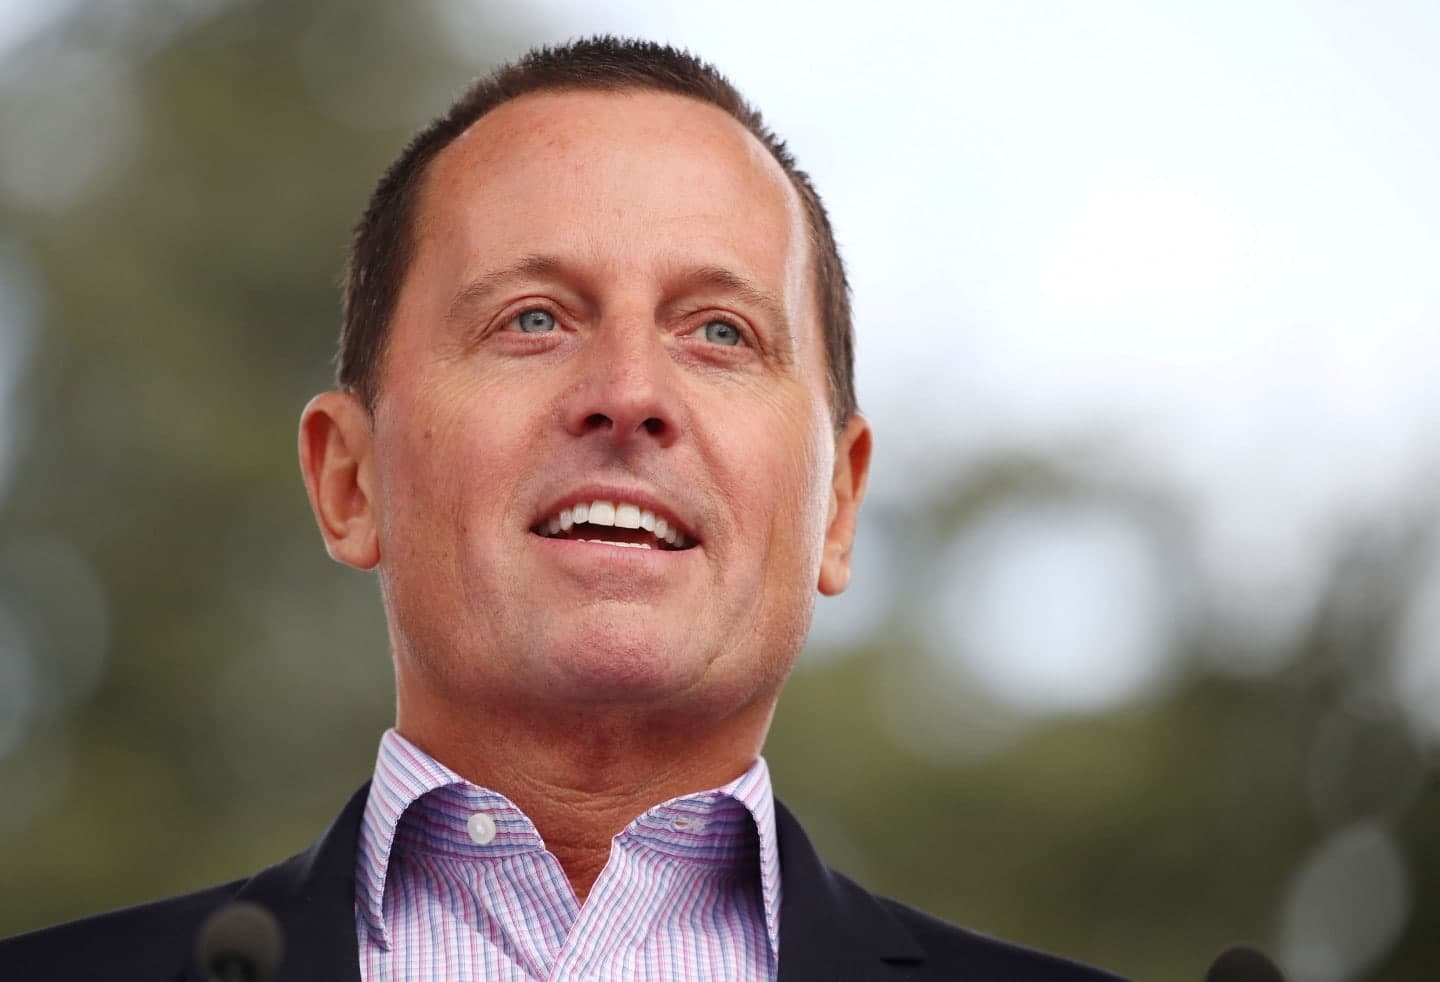 Trump appoints Grenell, envoy who warned Nigerians against Buhari as US Intelligence chief